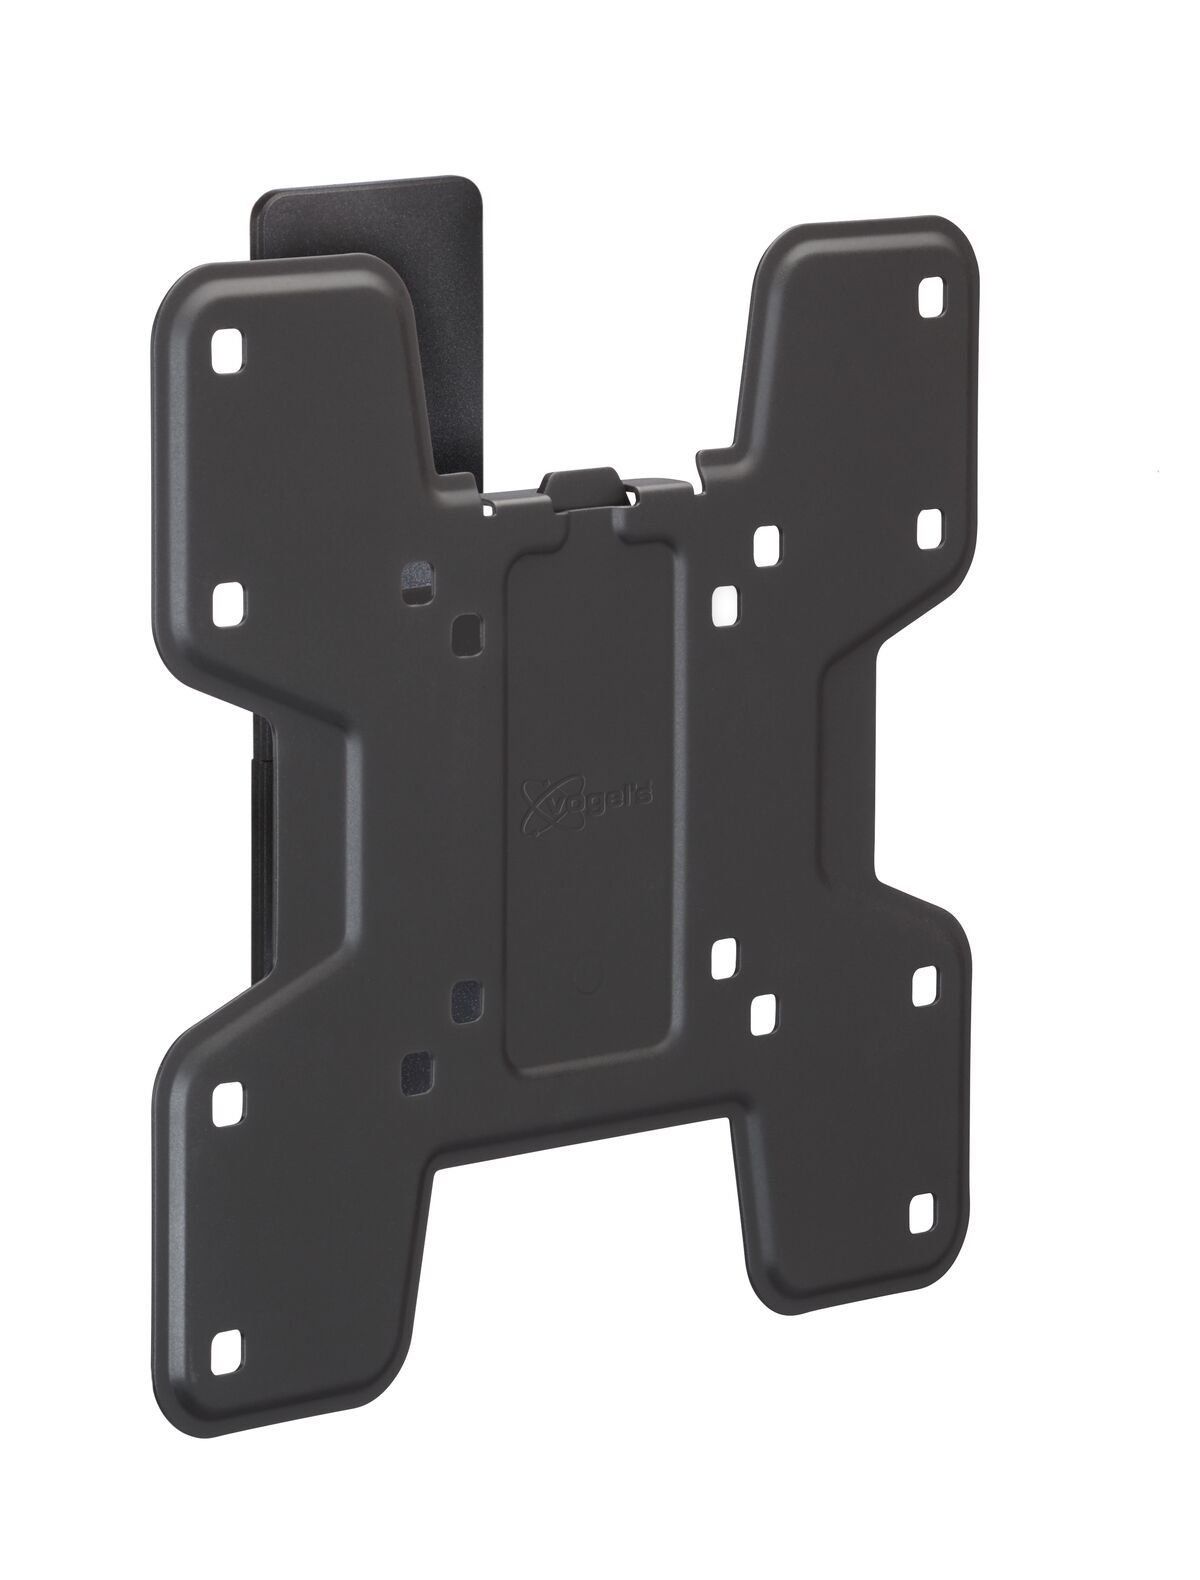 Vogel's PFW 2020 Display wall mount turn & tilt - Product